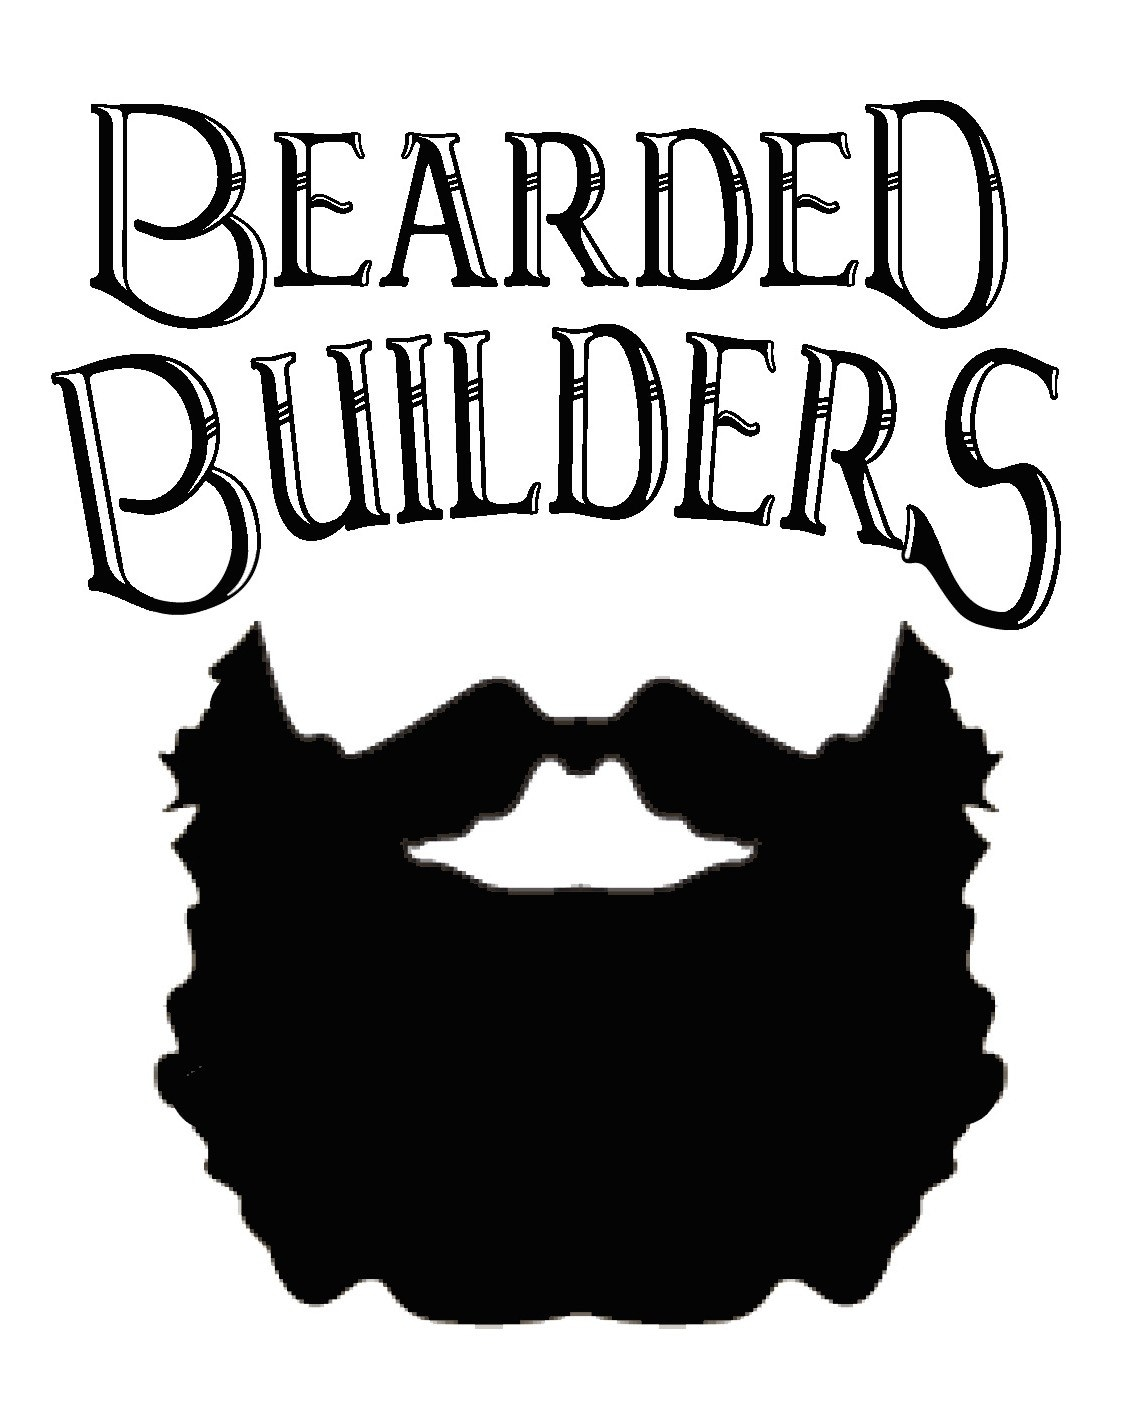 Bearded Builders